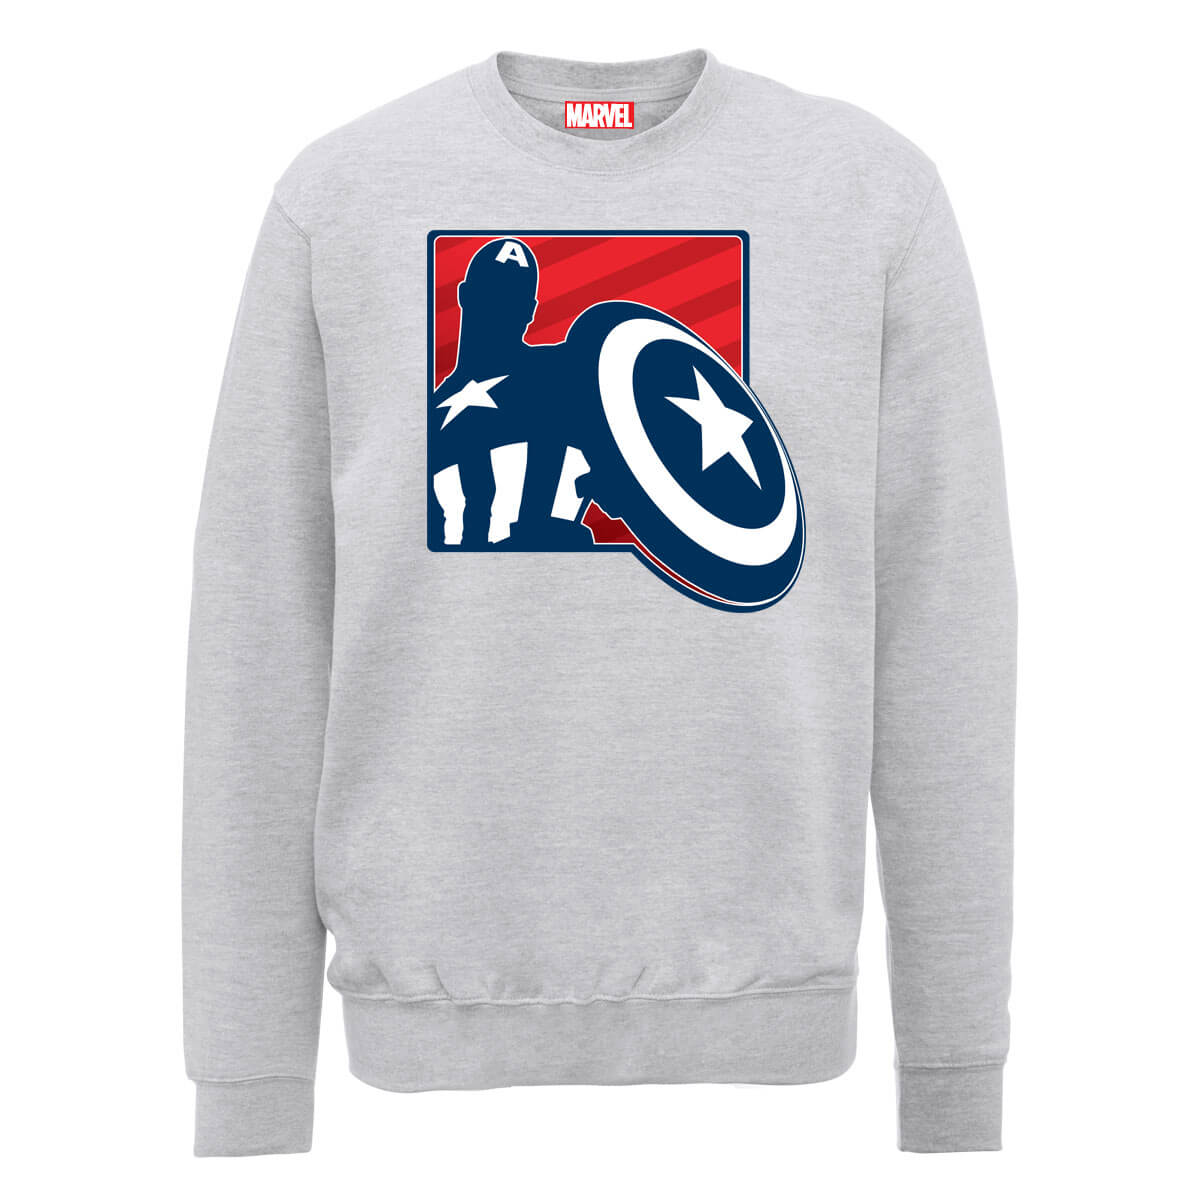 Marvel Avengers Assemble Captain America Badge Outline Sweatshirt - Grey